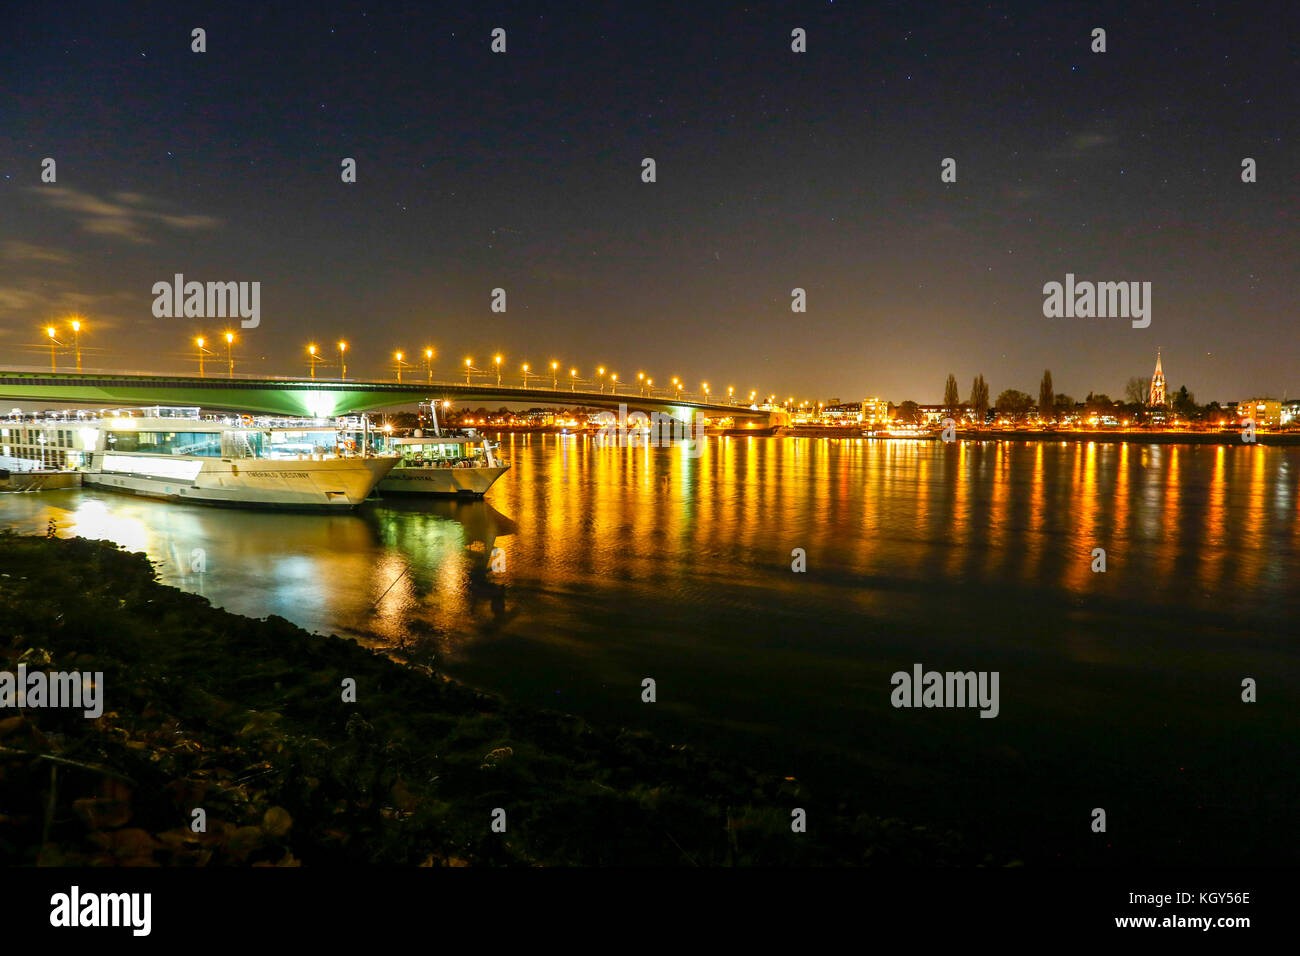 Night view of the Rhein River at Bonn in Germany. - Stock Image